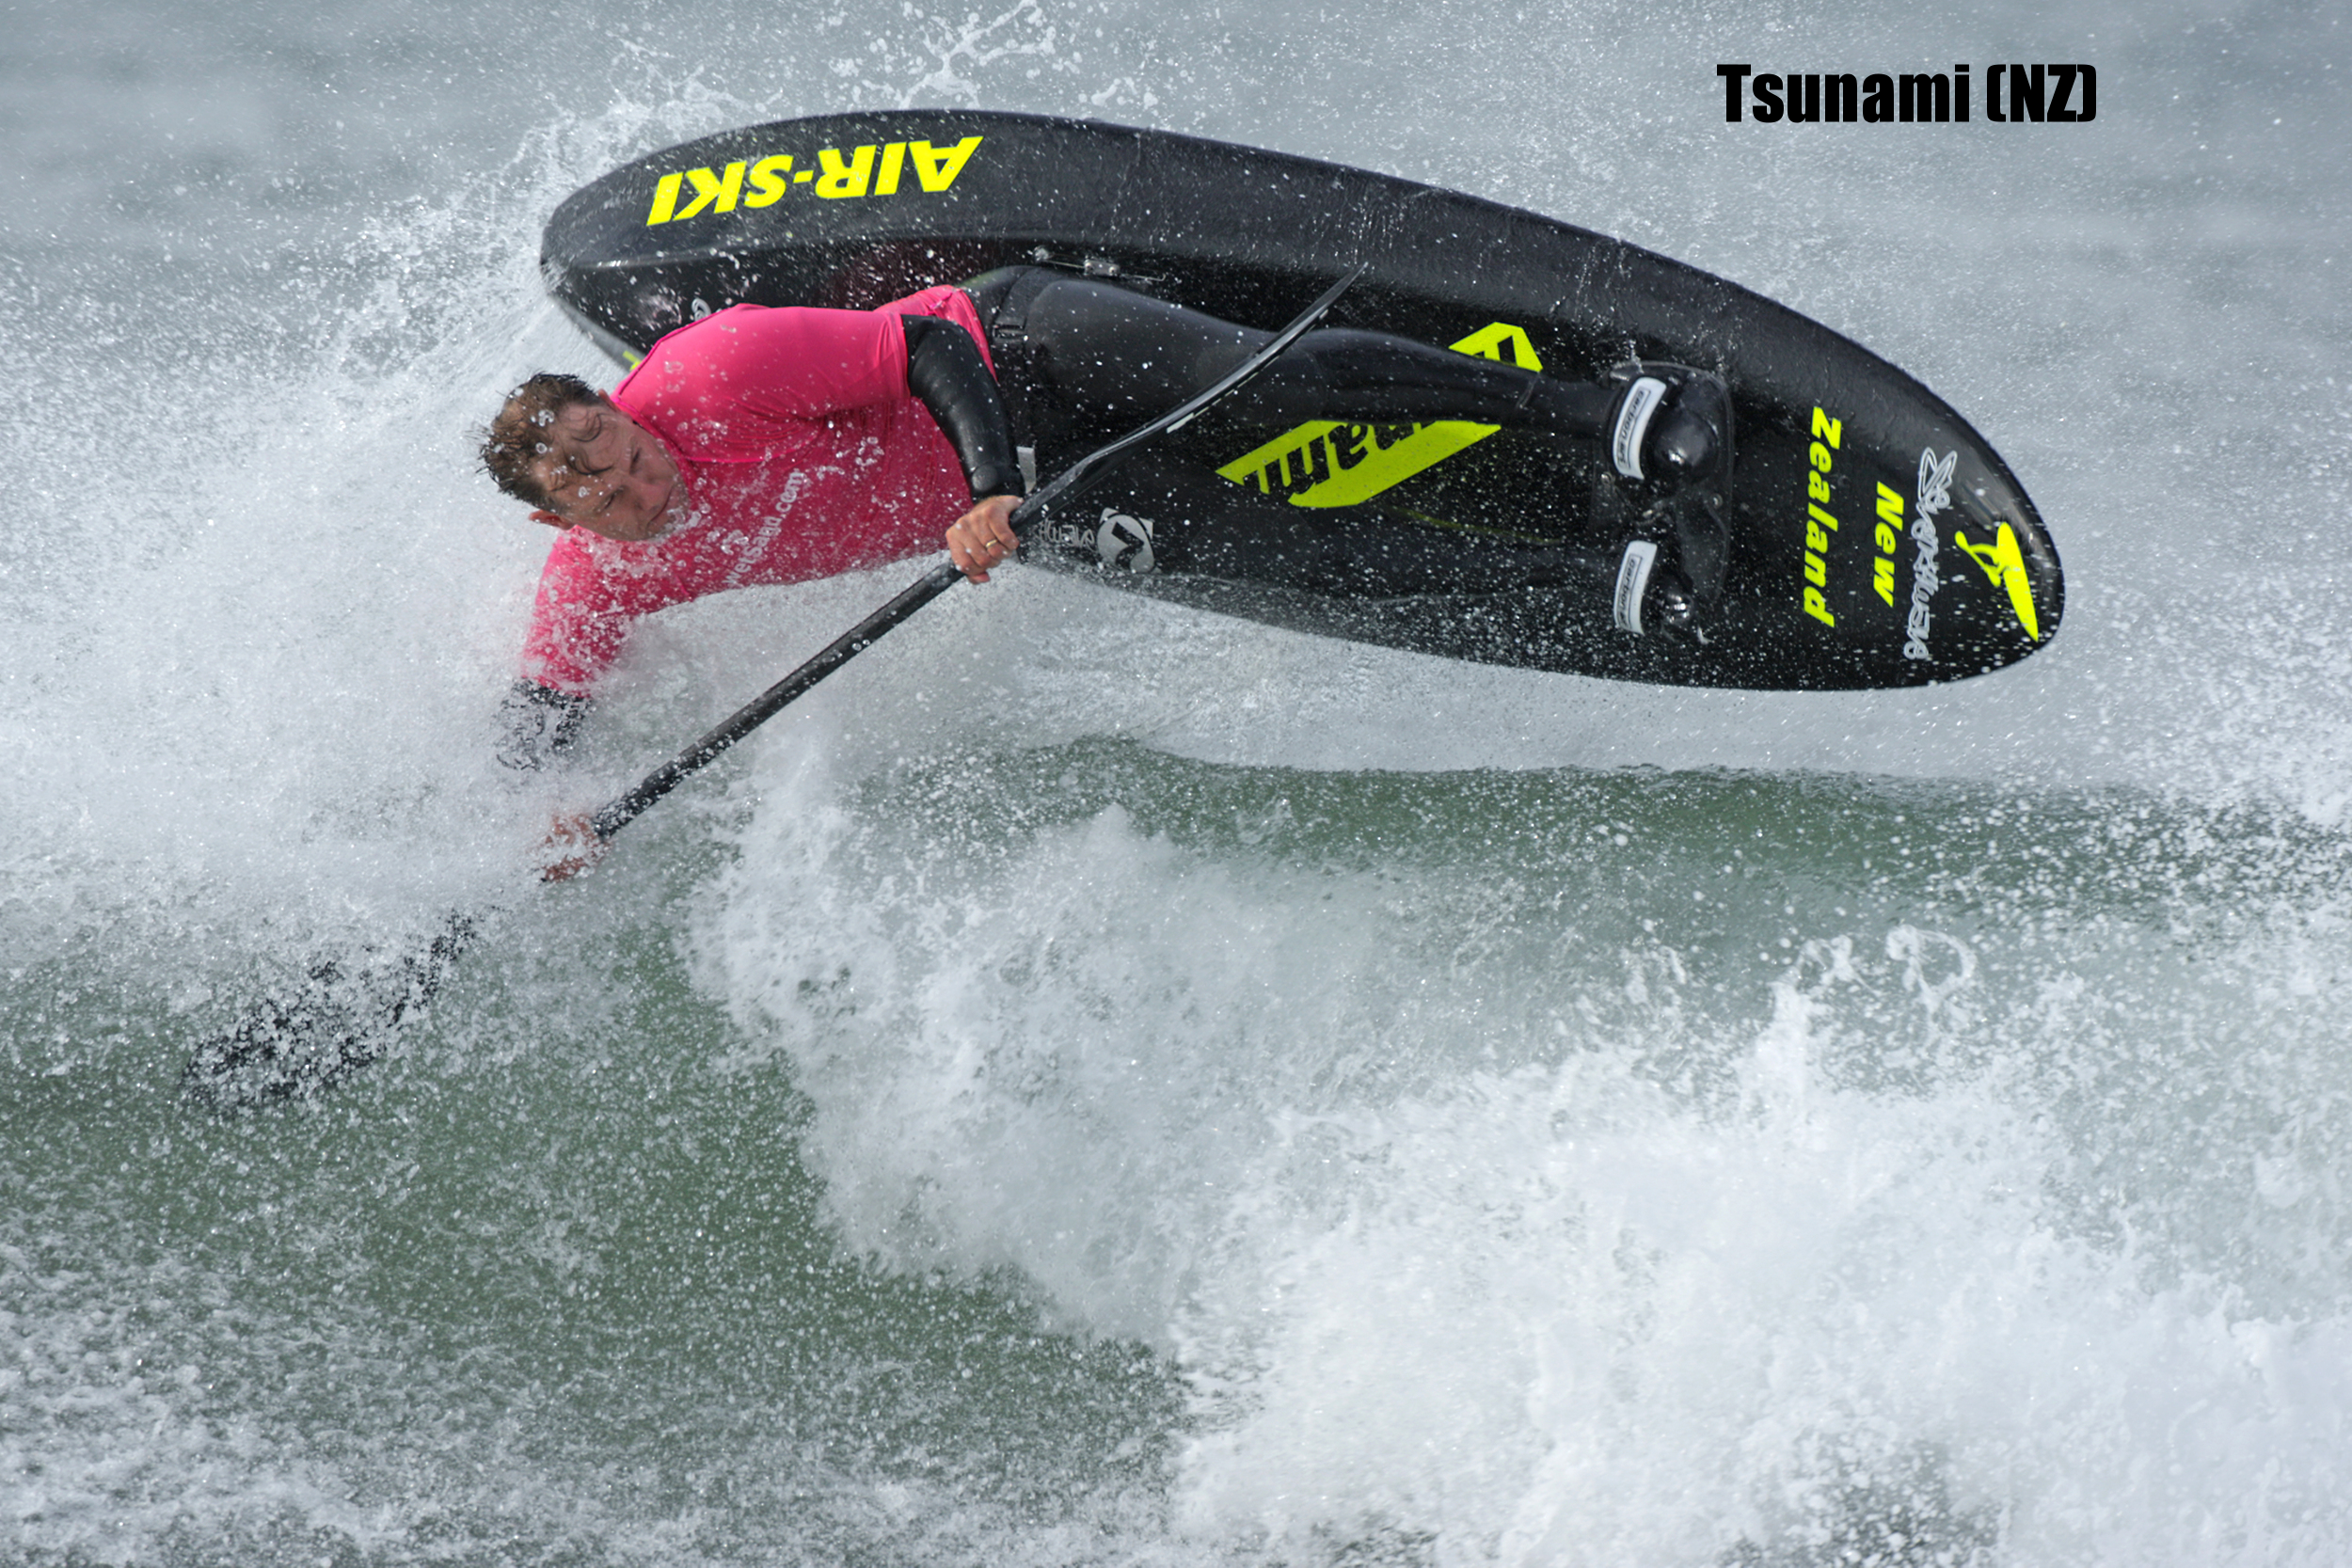 TSUNAMI (New Zealand) - Showing Tony Cherry, Team Rider - click on the picture to go to Tsunami website - Photo Copyright Dominick Lemarie Photography